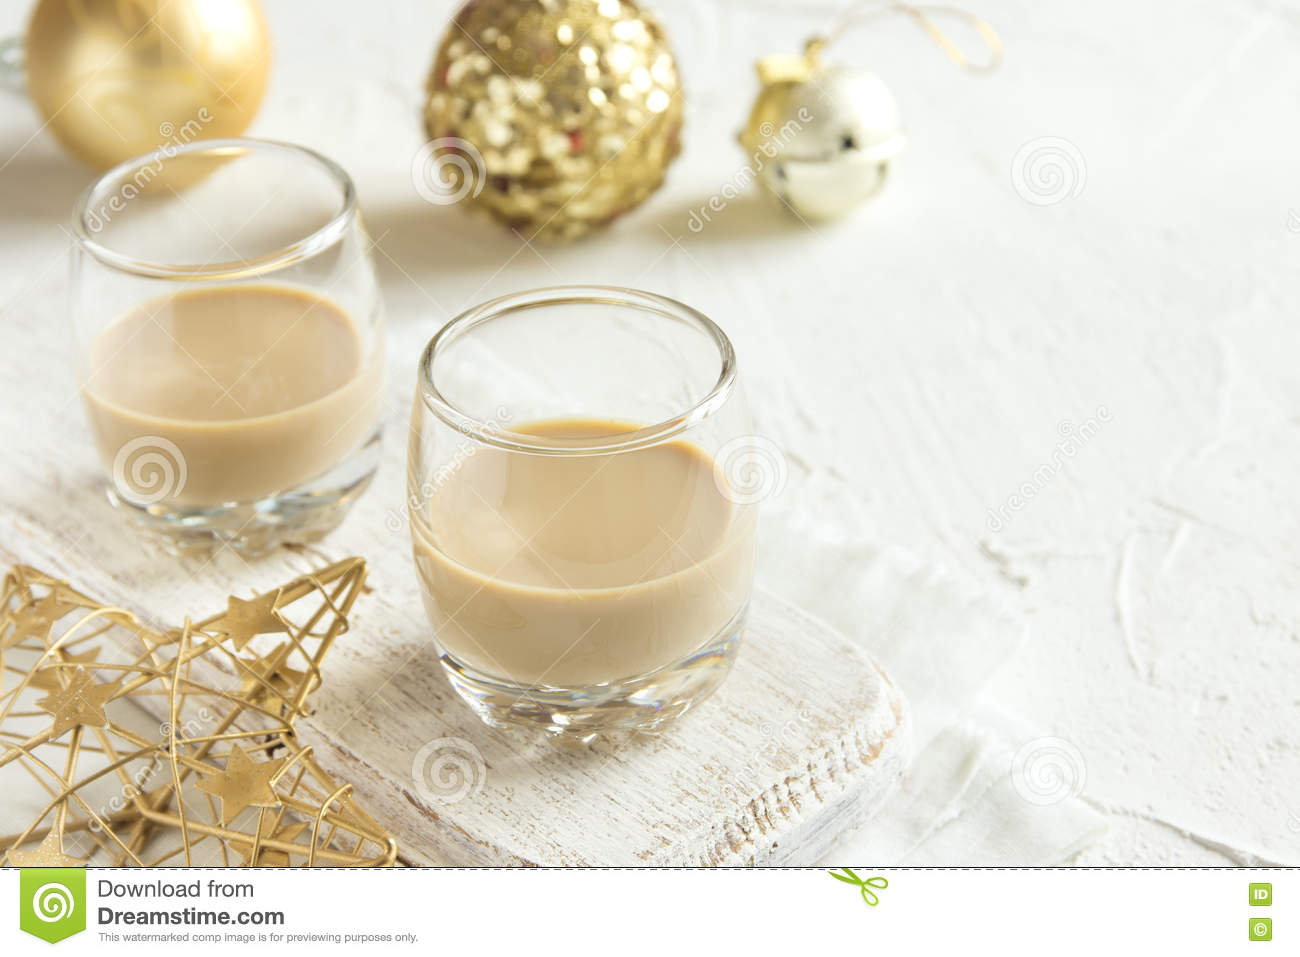 Irish cream for Christmas stock image. Image of milk - 77611373